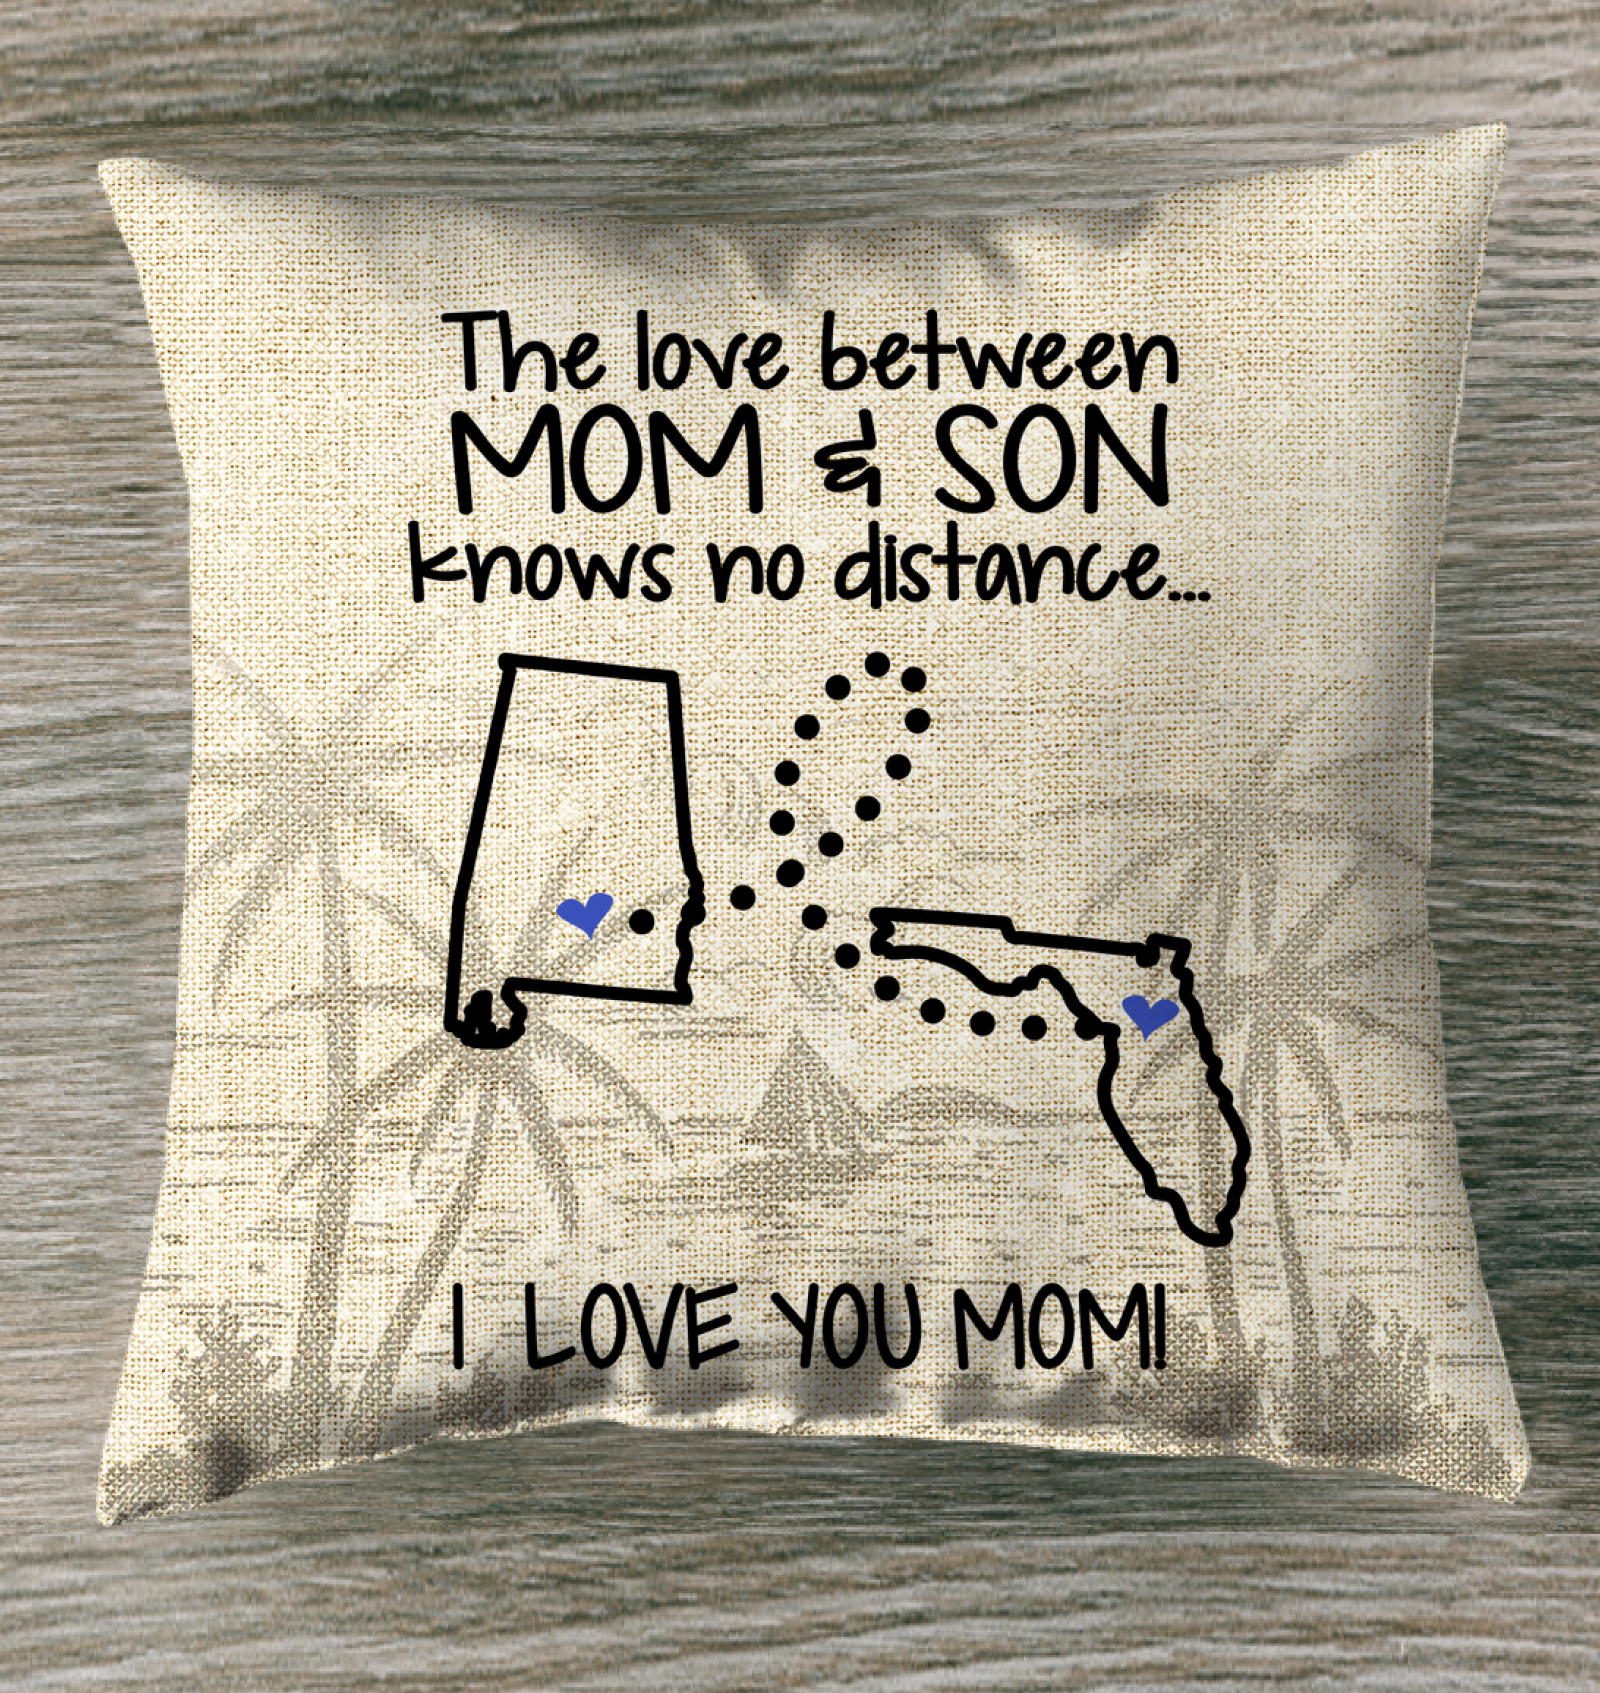 FLORIDA ALABAMA THE LOVE MOM AND SON KNOWS NO DISTANCE